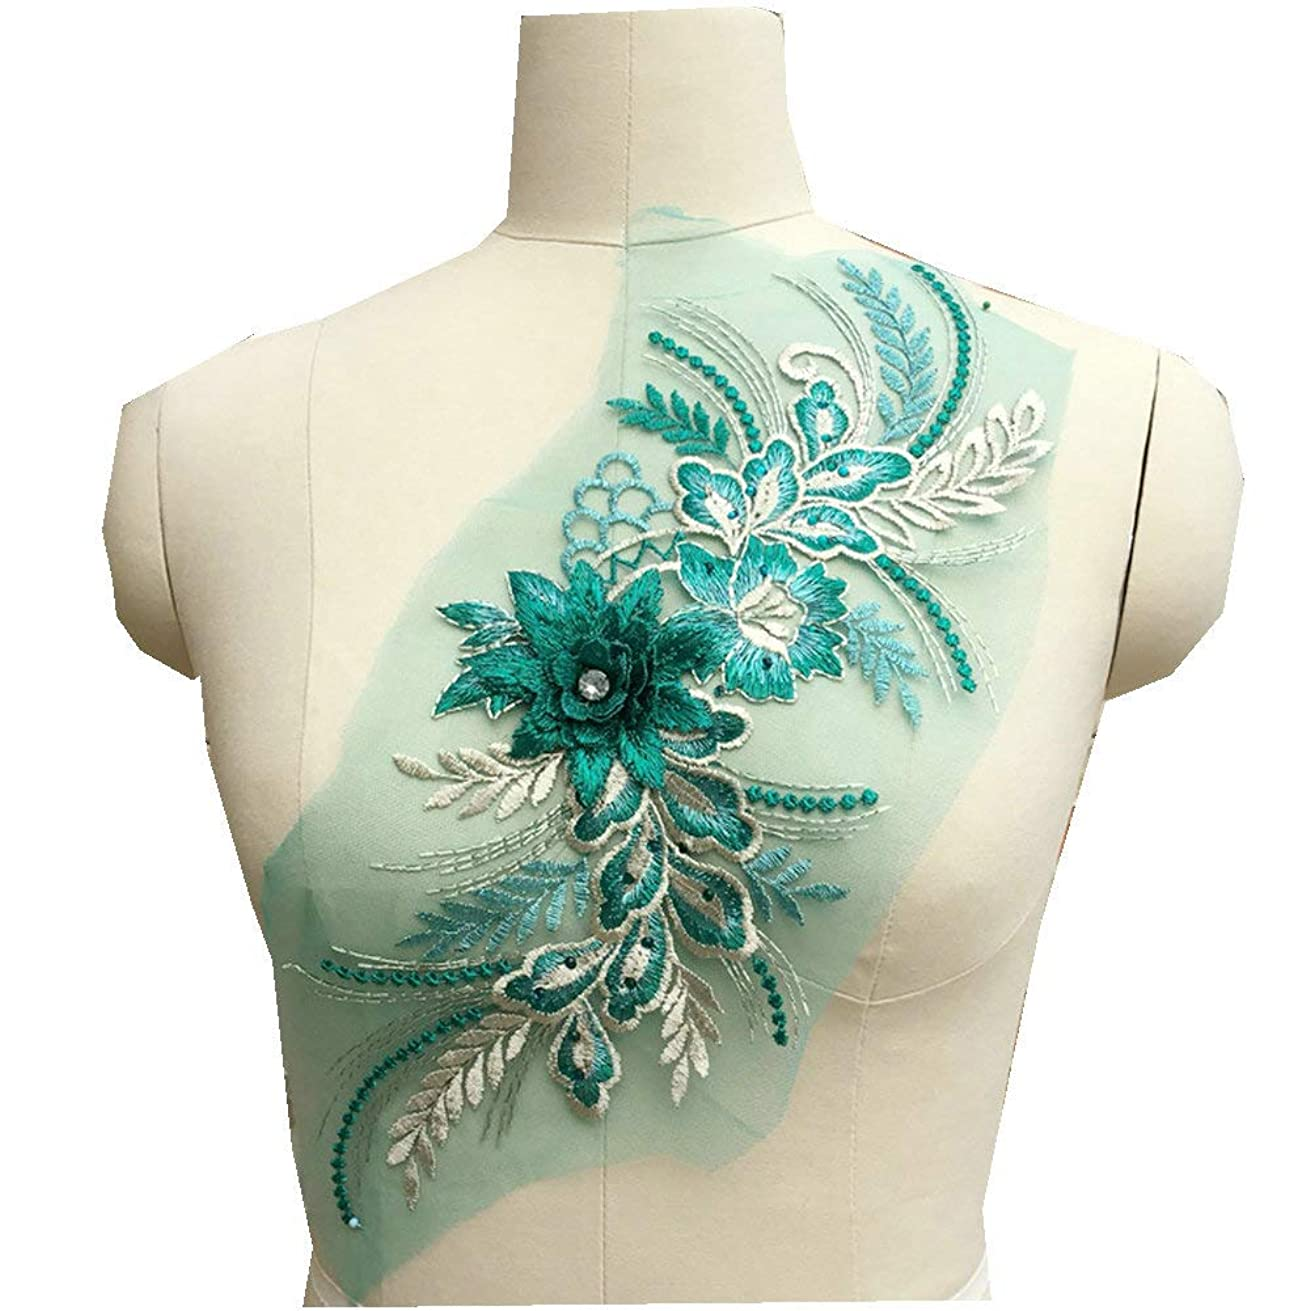 Colorful Large Flower Embroidered Applique for Wedding Dress Consume Clothes Sticker on Dress Supply (Green)